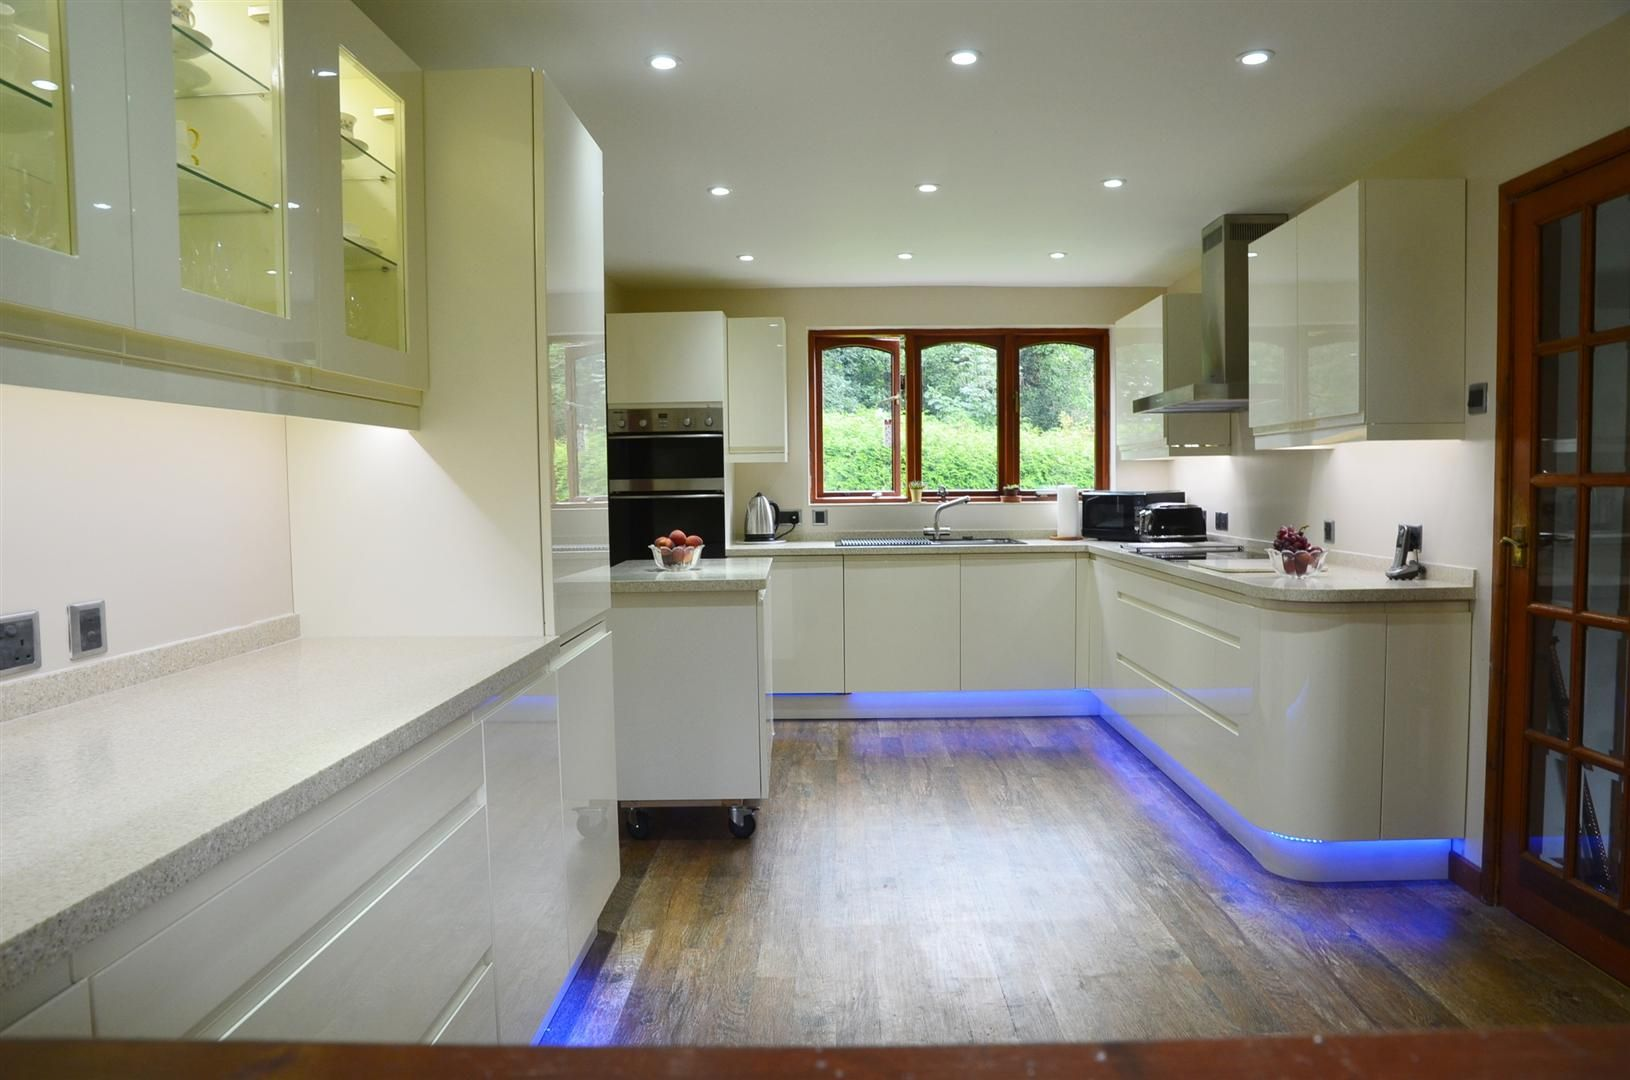 Led Kitchen Cabinet Downlights Energy Efficient Led Downlights Combined With Colour